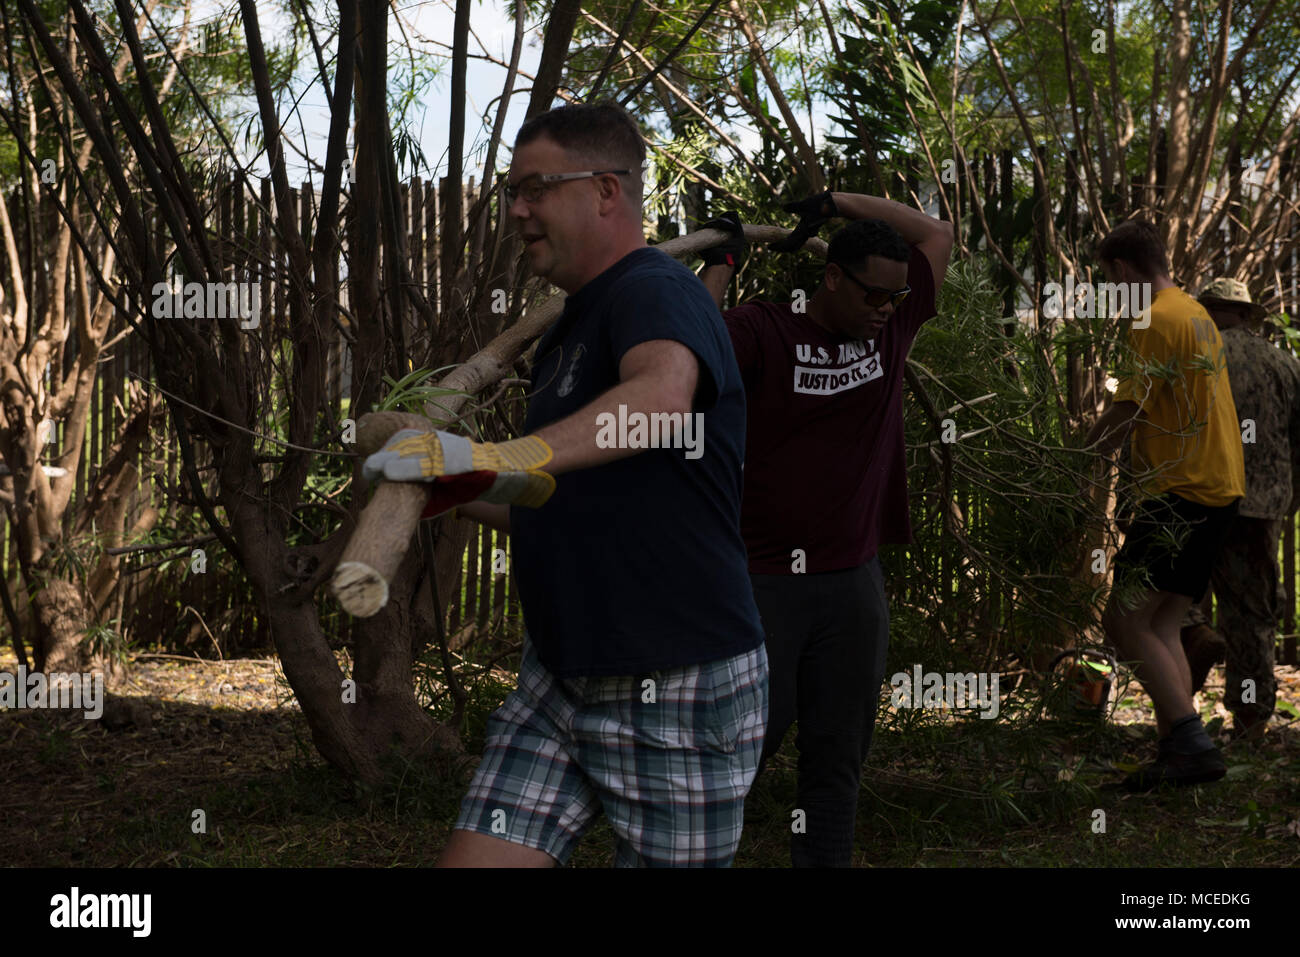 HONOLULU -- (April 13, 2018) Hawaii-area Sailors and families participated in the second in a series of planned cleanups working in conjunction with State of Hawaii along Nimitz Highway in Honolulu, April 13. The goal of the cleanup is to improve the conditions of the neighborhood. (Photo by Mass Communication Specialist 1st Class Corwin M. Colbert) - Stock Image